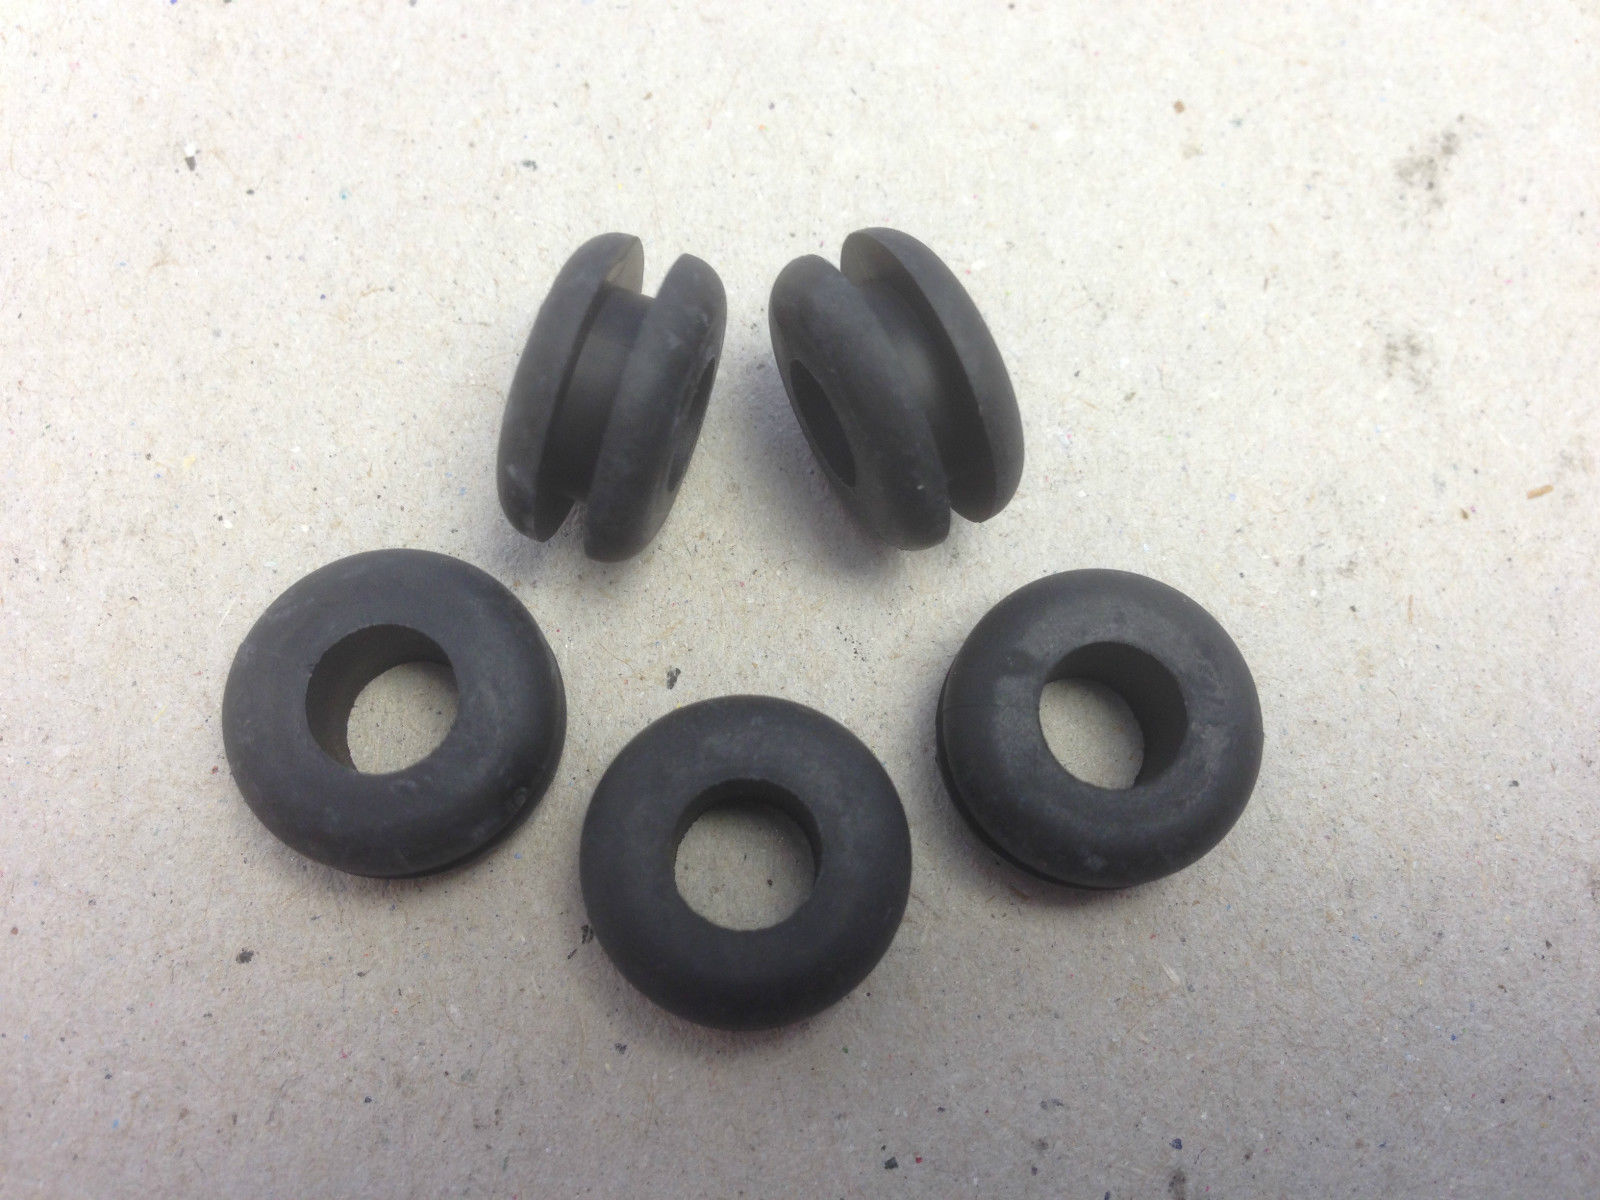 Rubber Grommet Open For Cable Hole 6mm 10mm Chassis Hole X